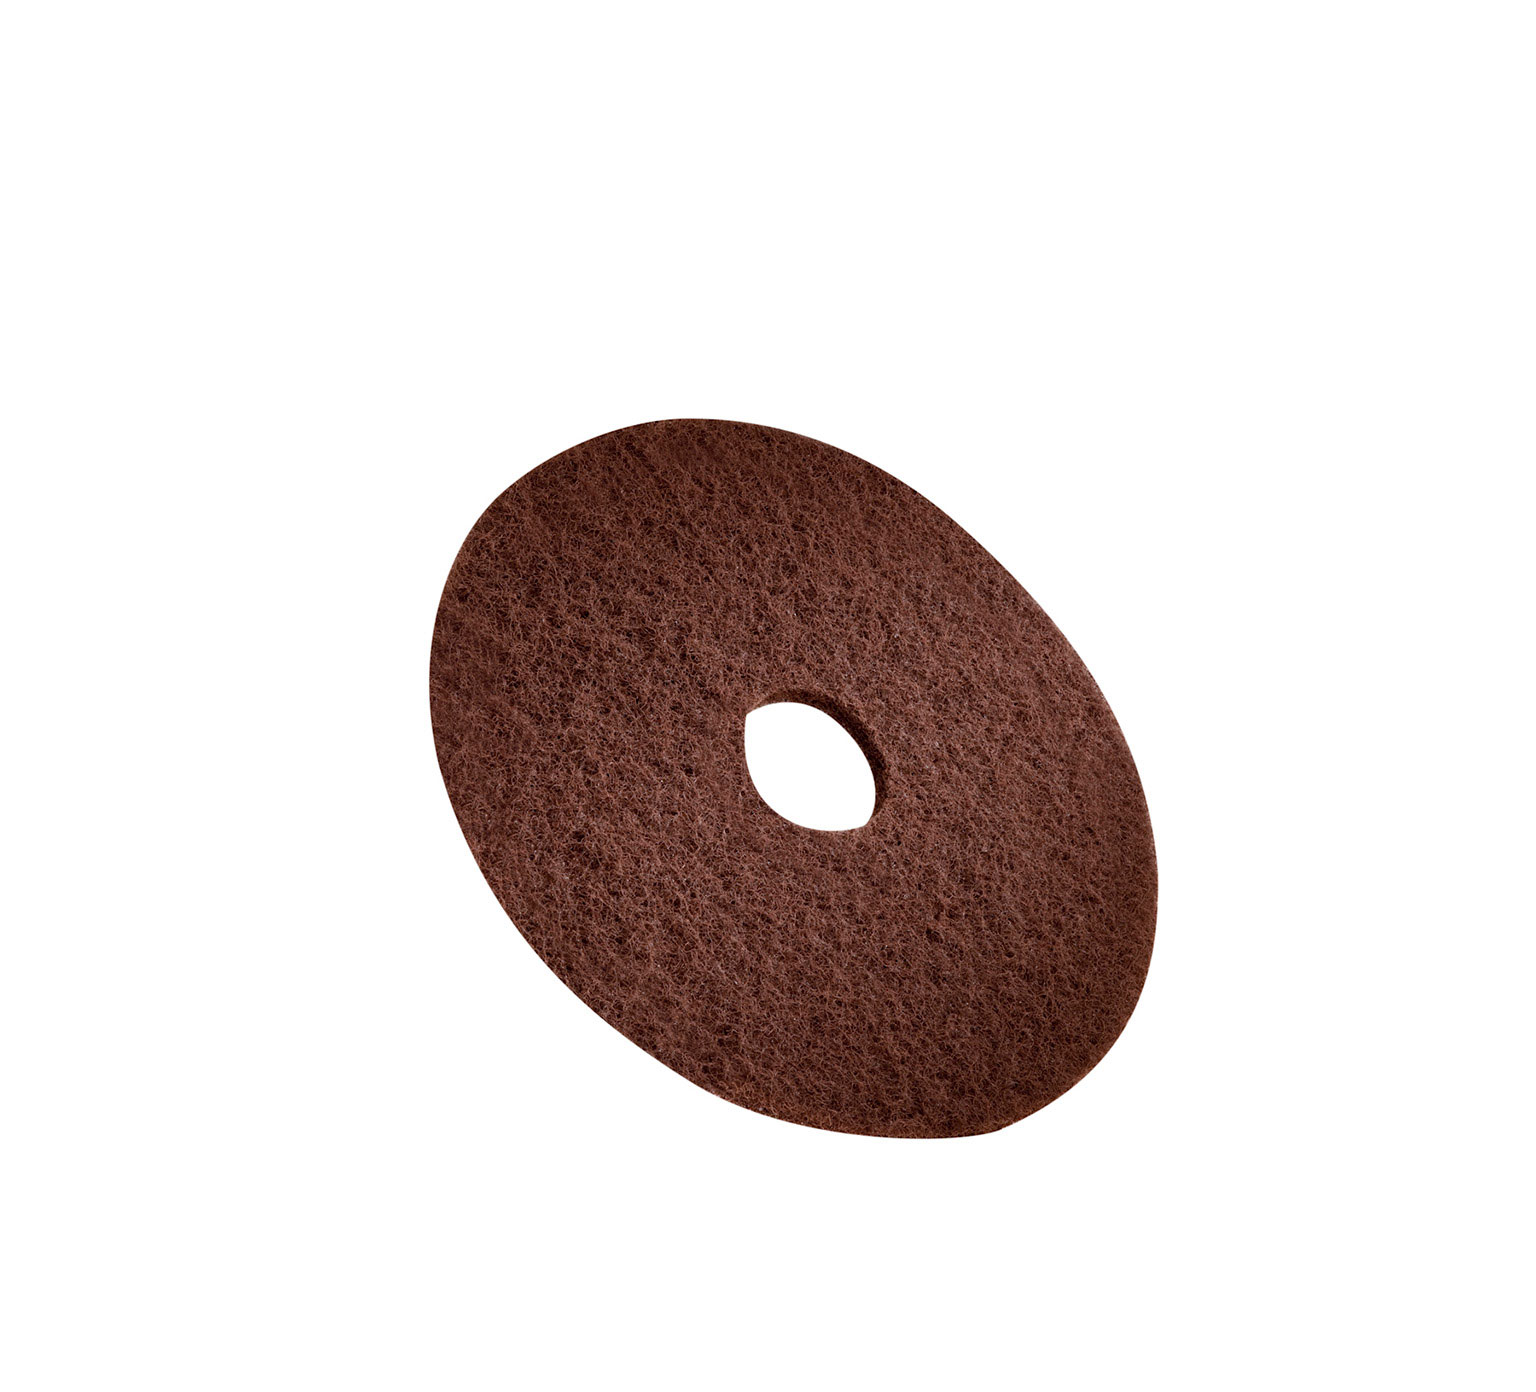 63248-1 3M Brown Stripping Pad – 16 in / 406 mm alt 1